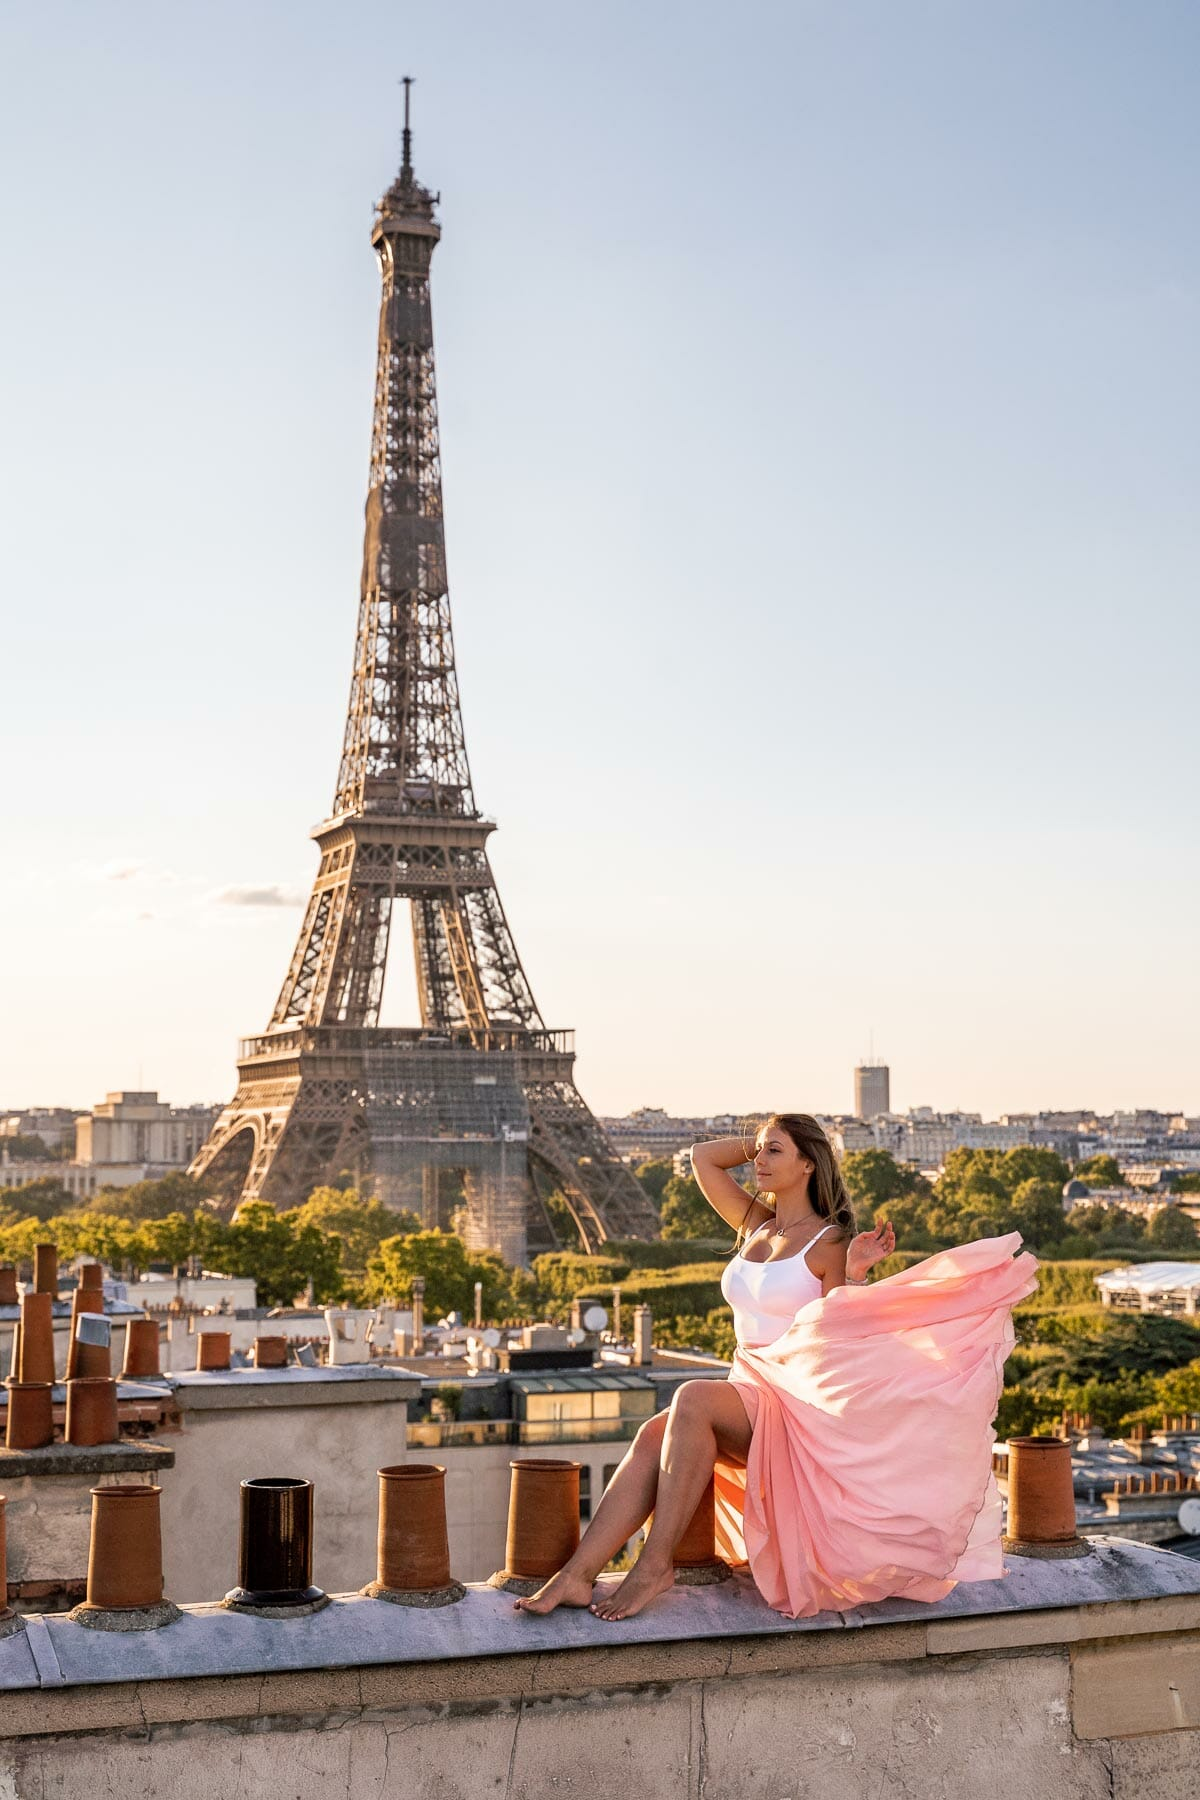 Girl in a pink skirt sitting on a rooftop in Paris with the Eiffel Tower in the background